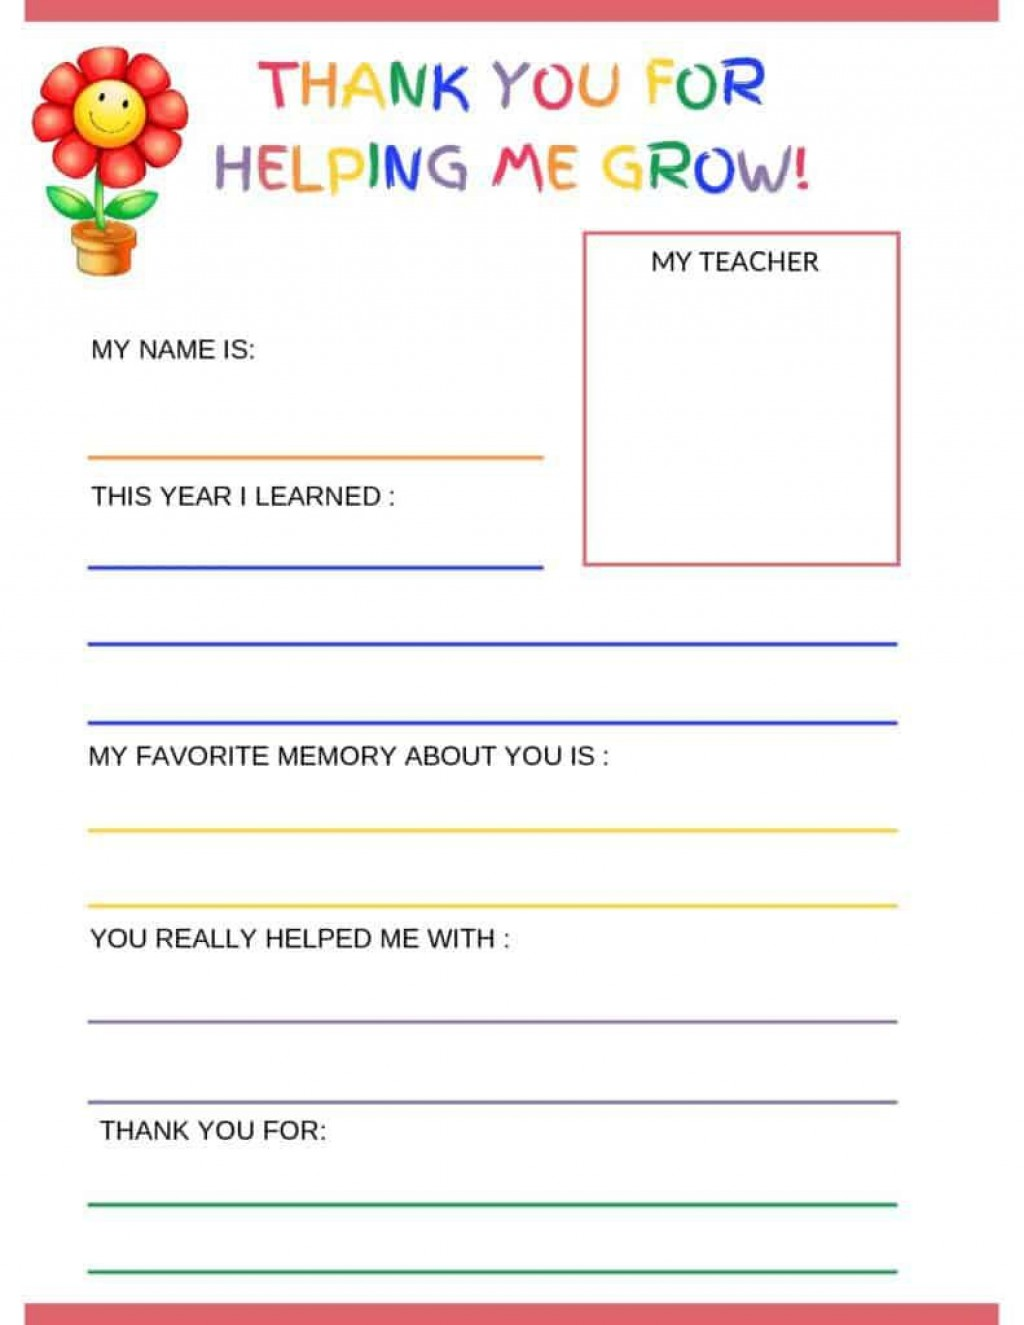 006 Imposing Thank You Note Template For Kid High Resolution  Kids Child Pdf LetterLarge